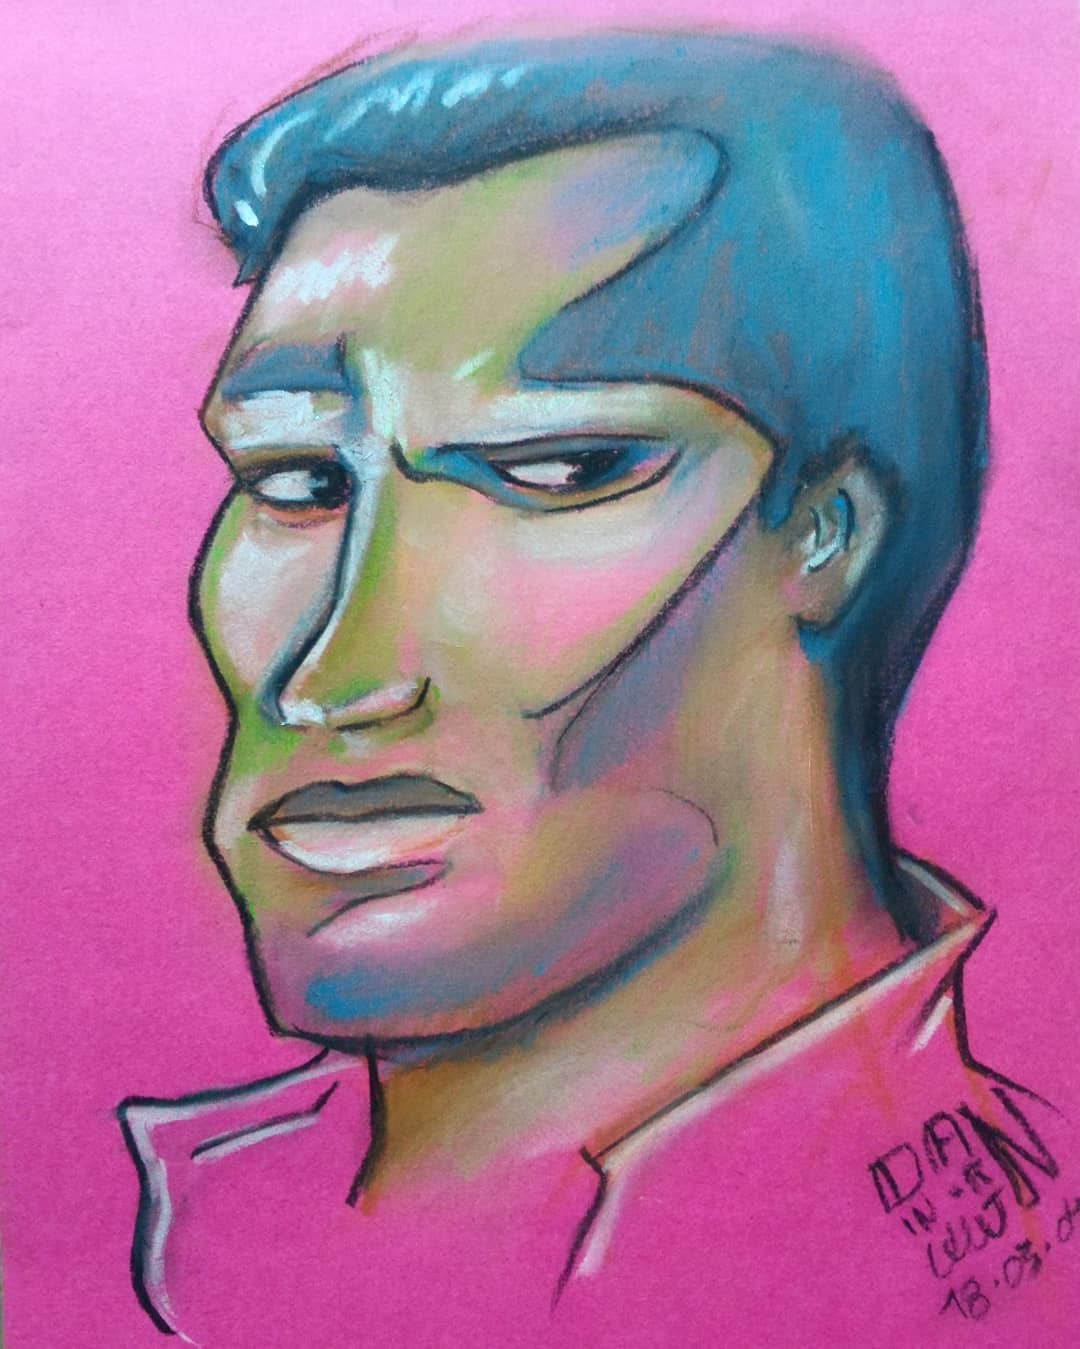 March Of Robots 04 - T-800 - The Terminator (1984) - Arnold Schwarzenegger. SoftPastel.